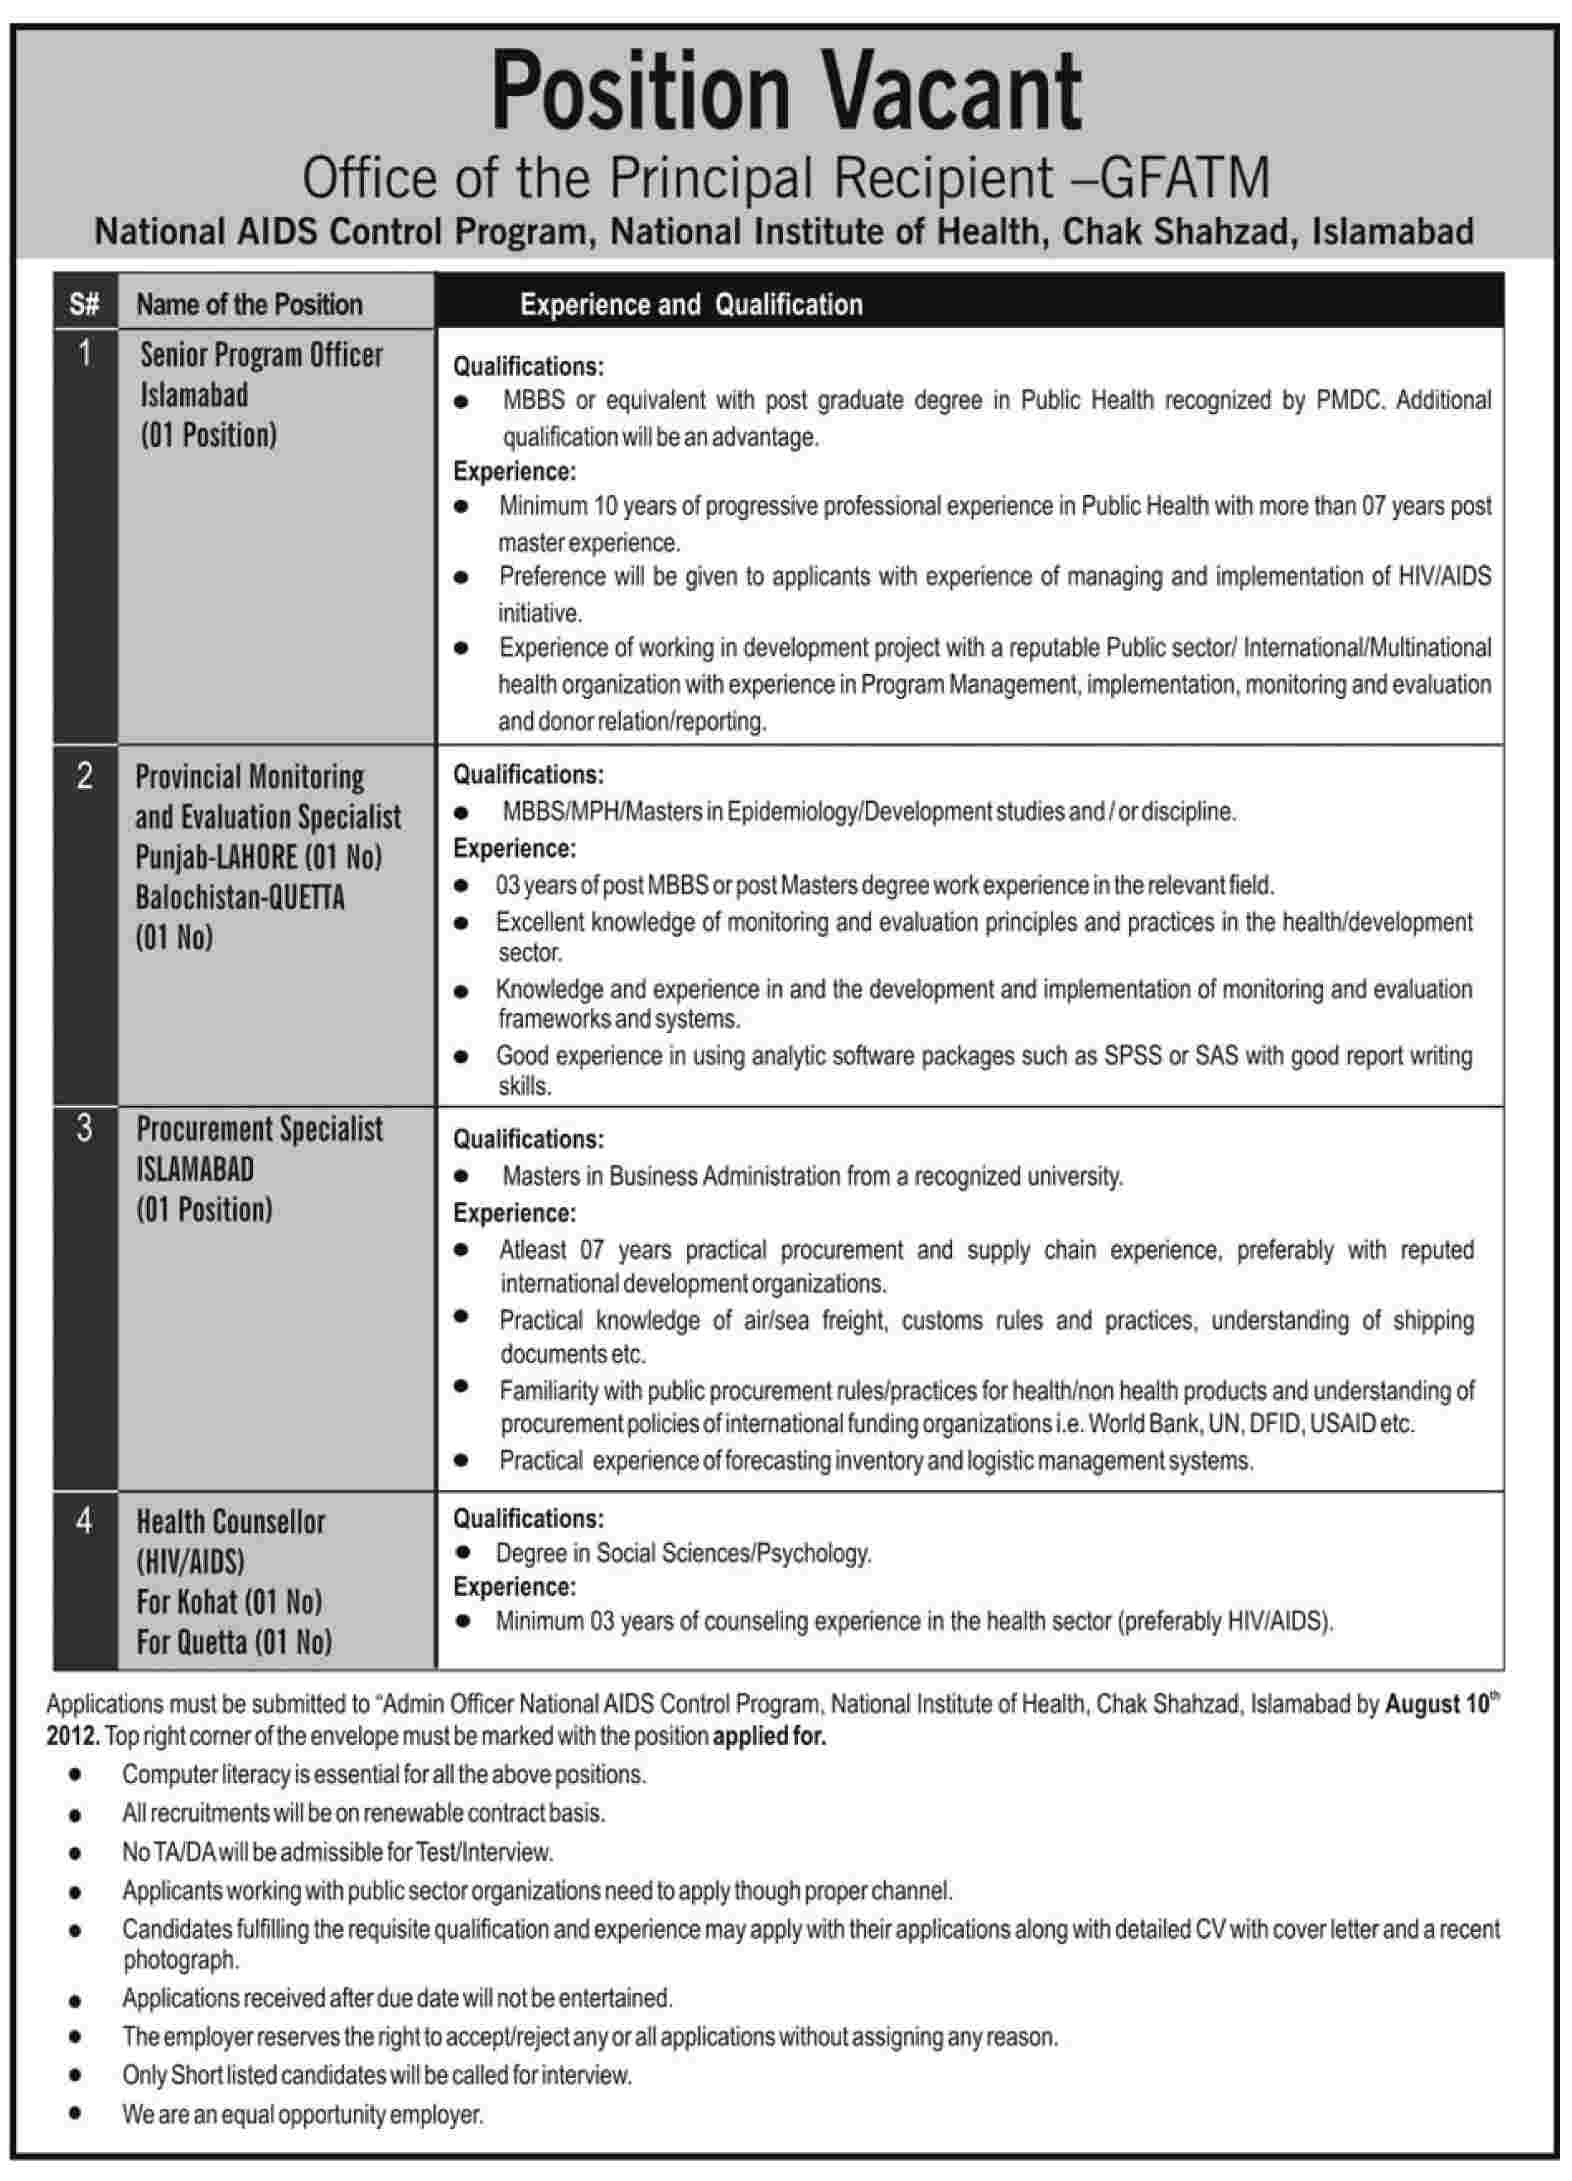 National AIDS Control Program, National Institute of Health Requires Management Staff and Health Counselor (